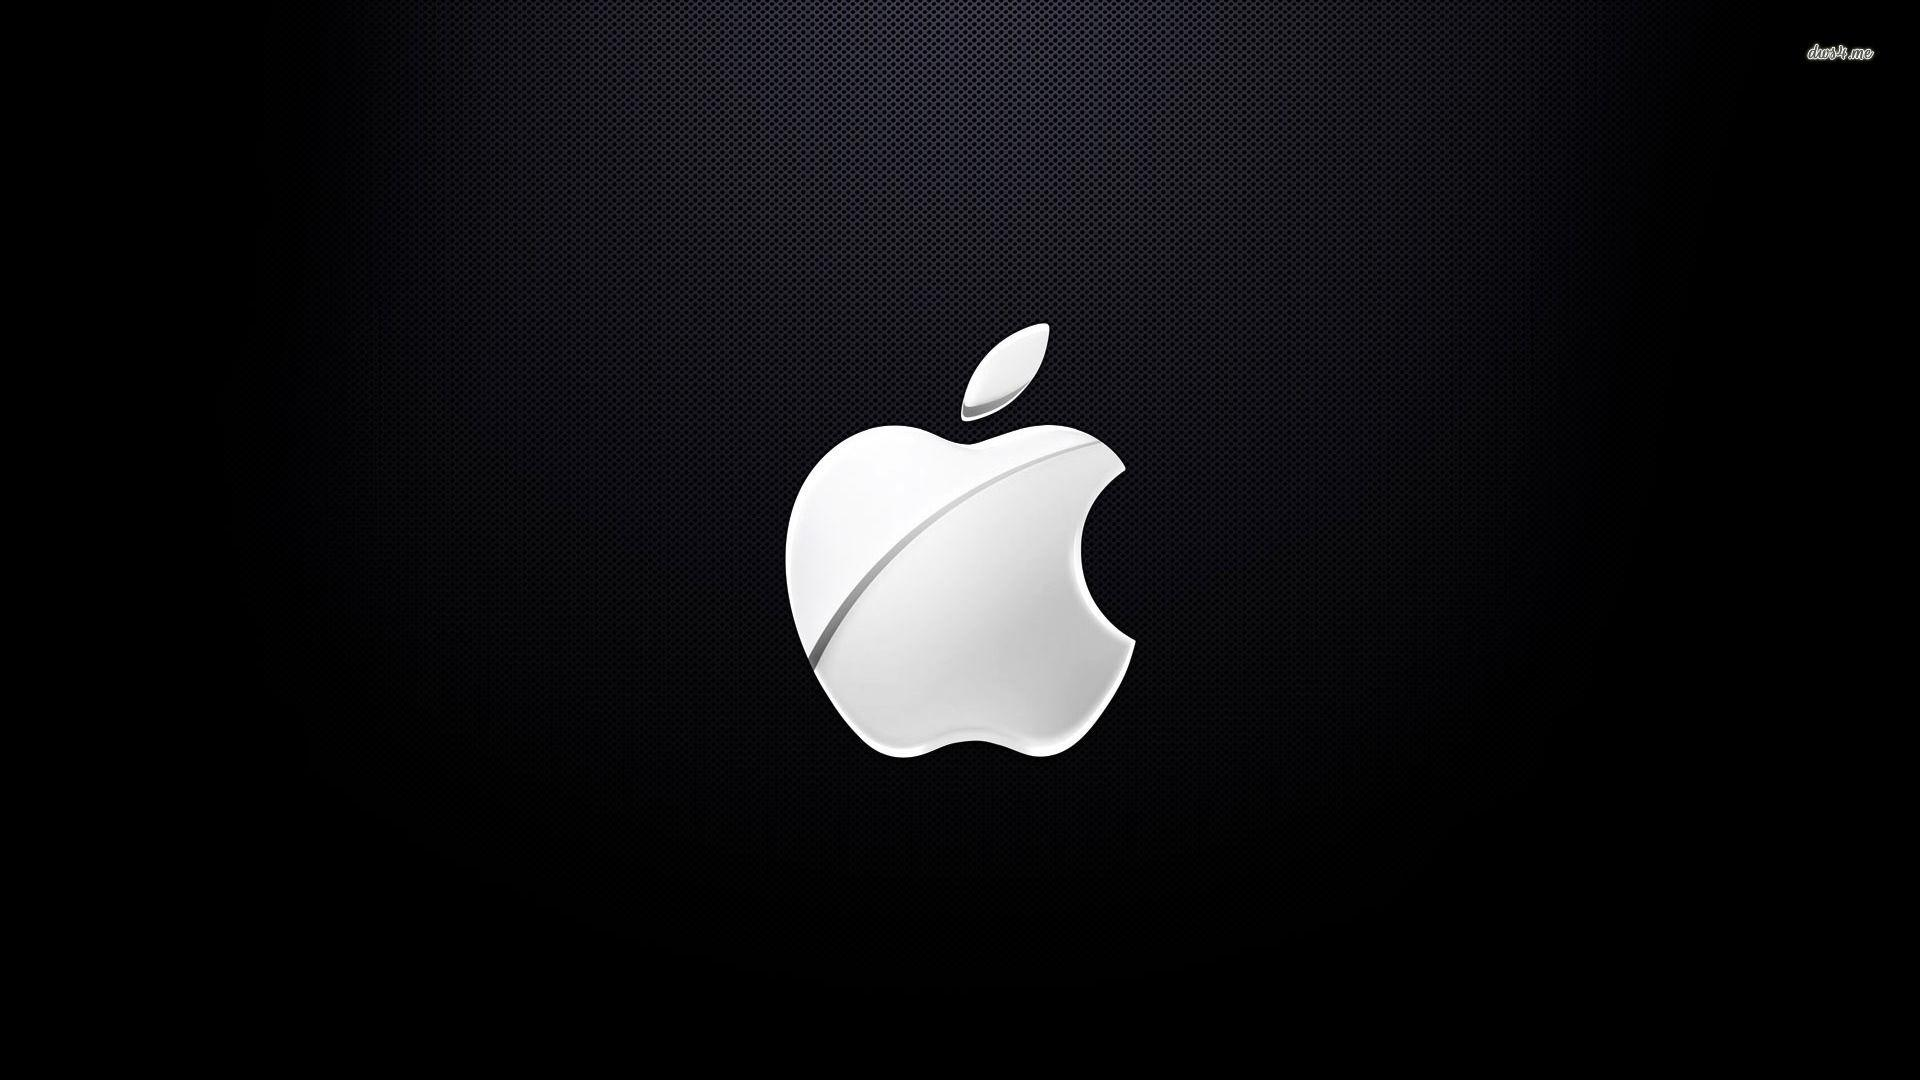 Apple Logo Hd Wallpapers For Iphone 1920 1080 Apple Logo: Apple Logo Wallpapers HD 1080p For Iphone